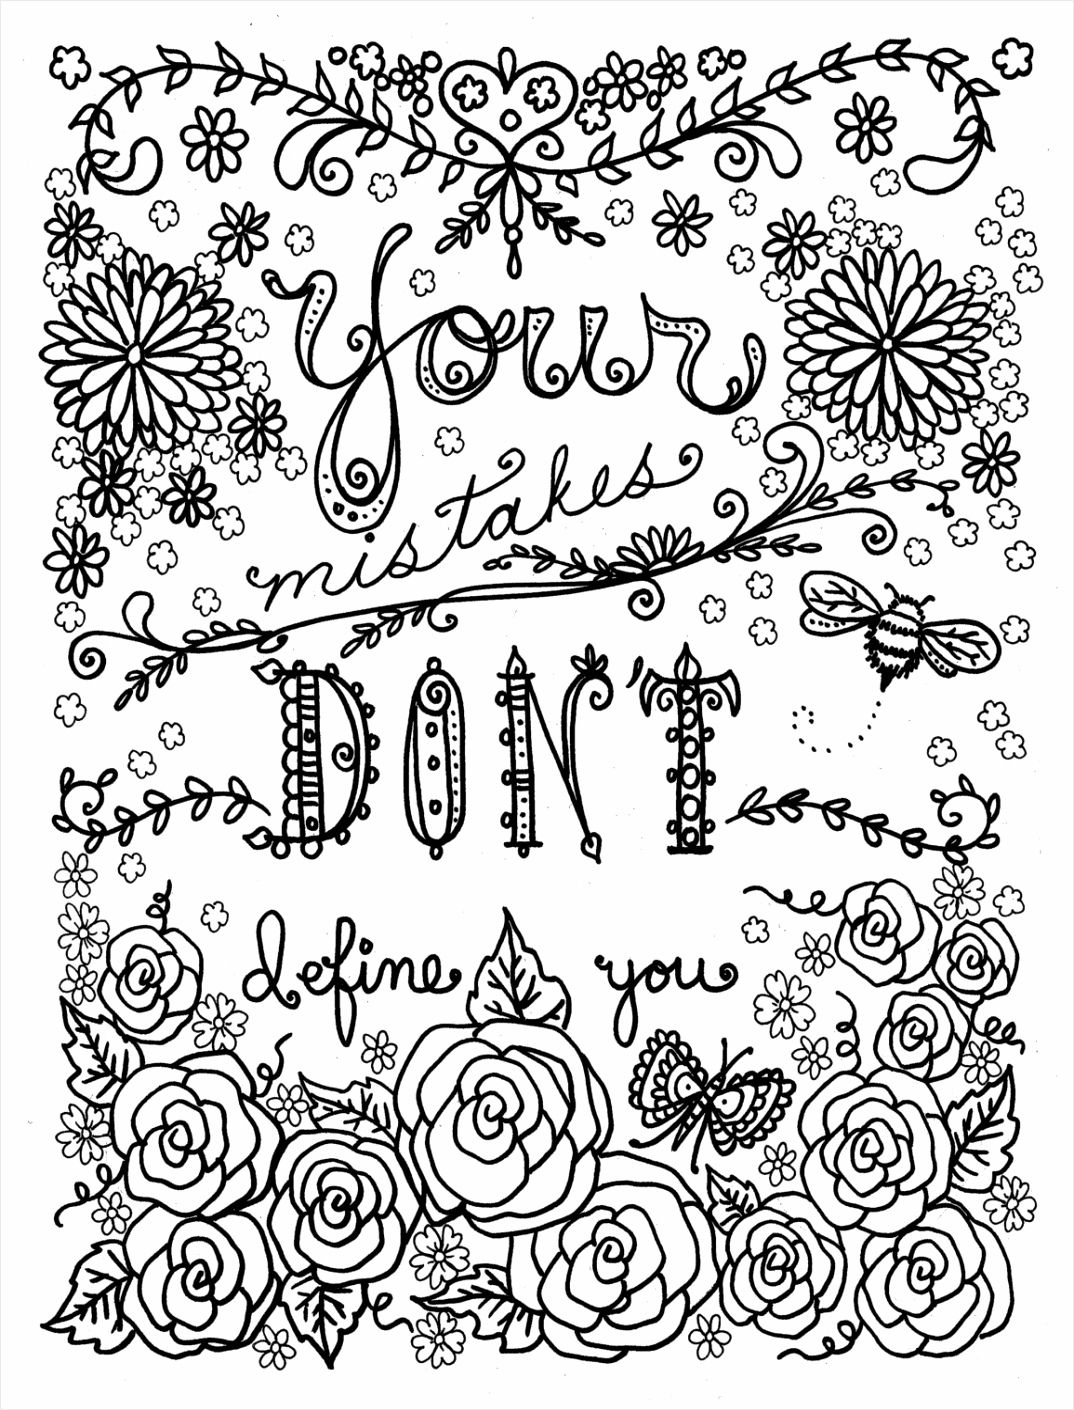 amazing inspirational adult coloring pages games online shopkins to print for adults free and color arzot